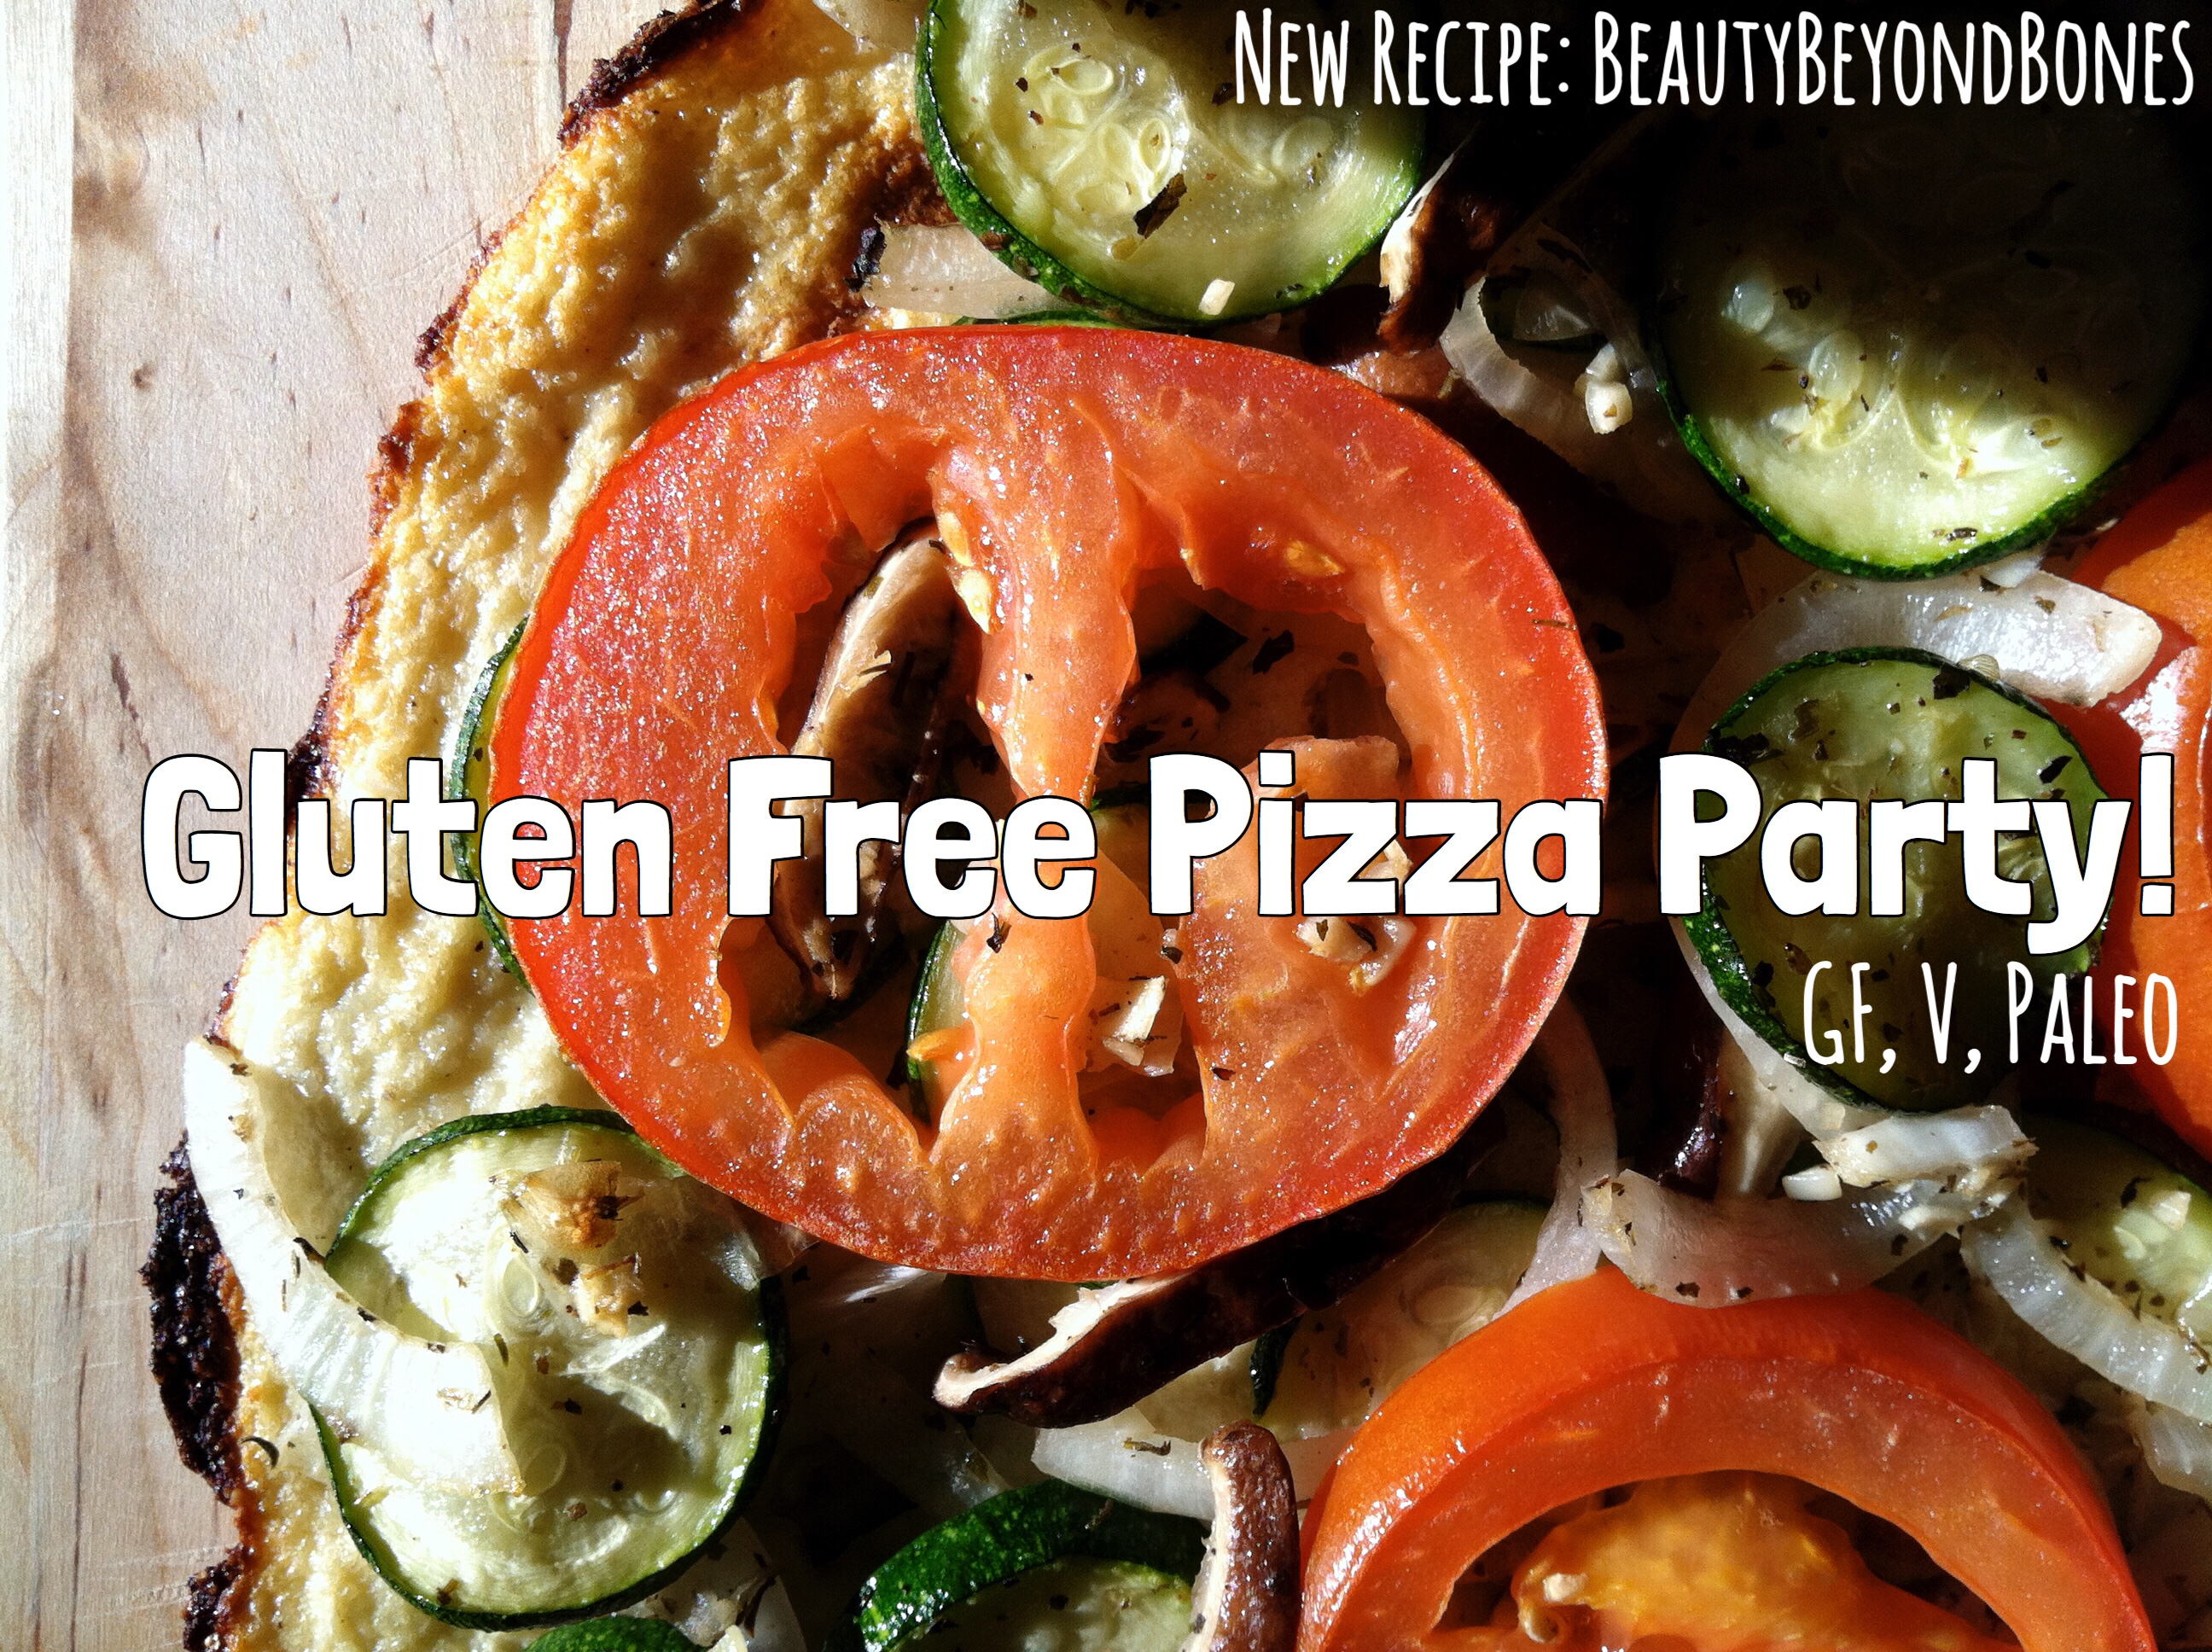 Gluten Free Pizza Party!